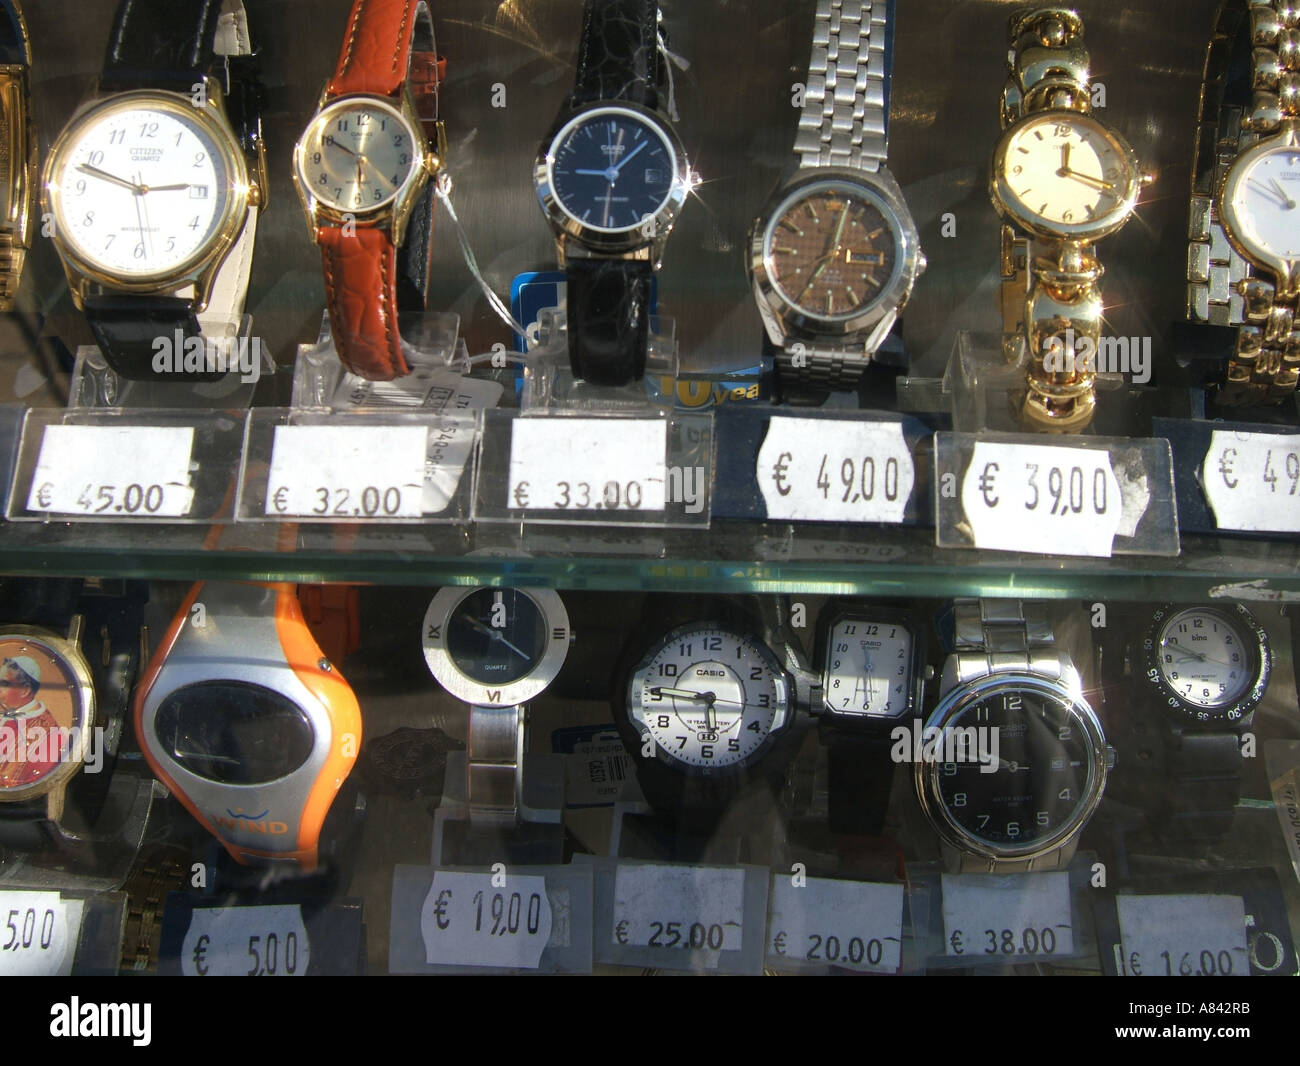 watches in shop window display Stock Photo: 6845946 - Alamy